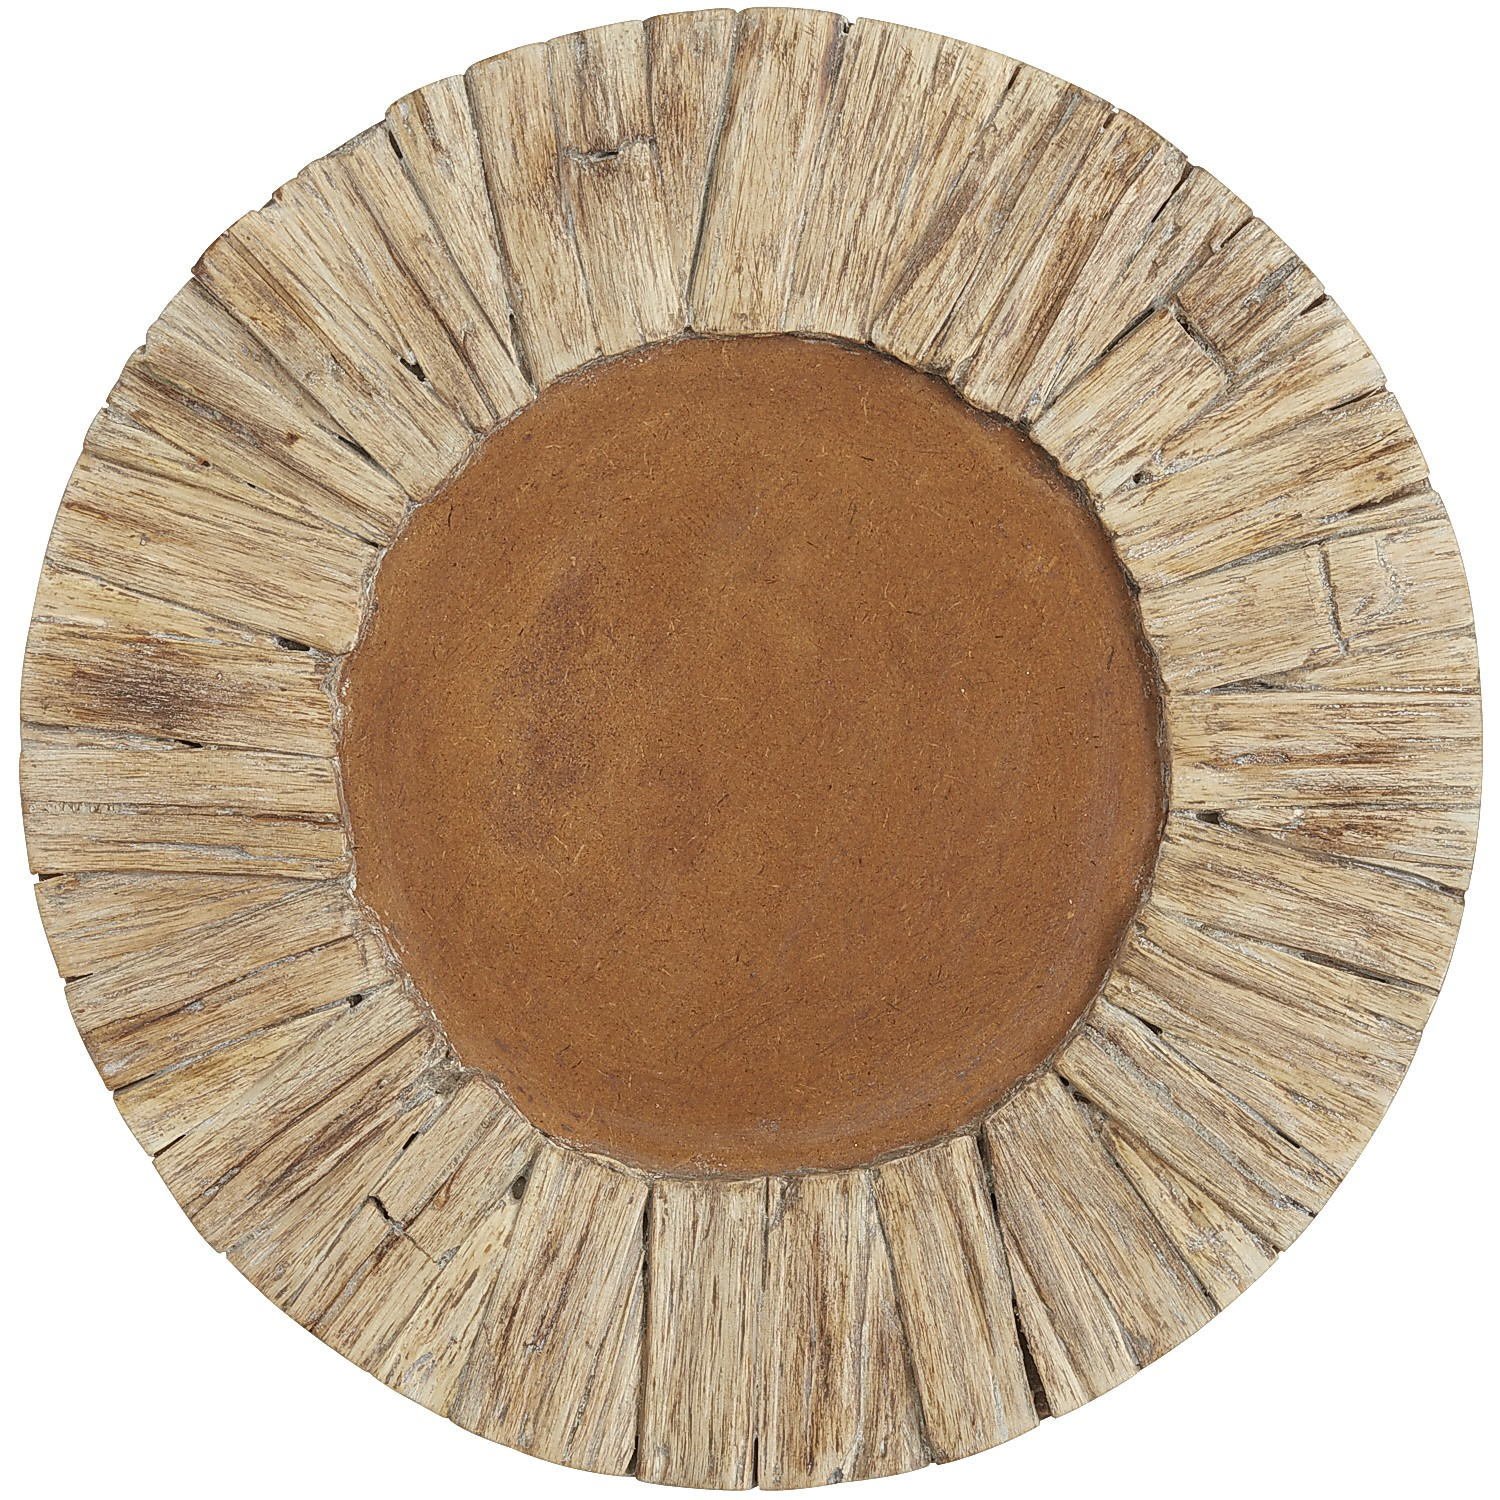 Driftwood Charger Plate